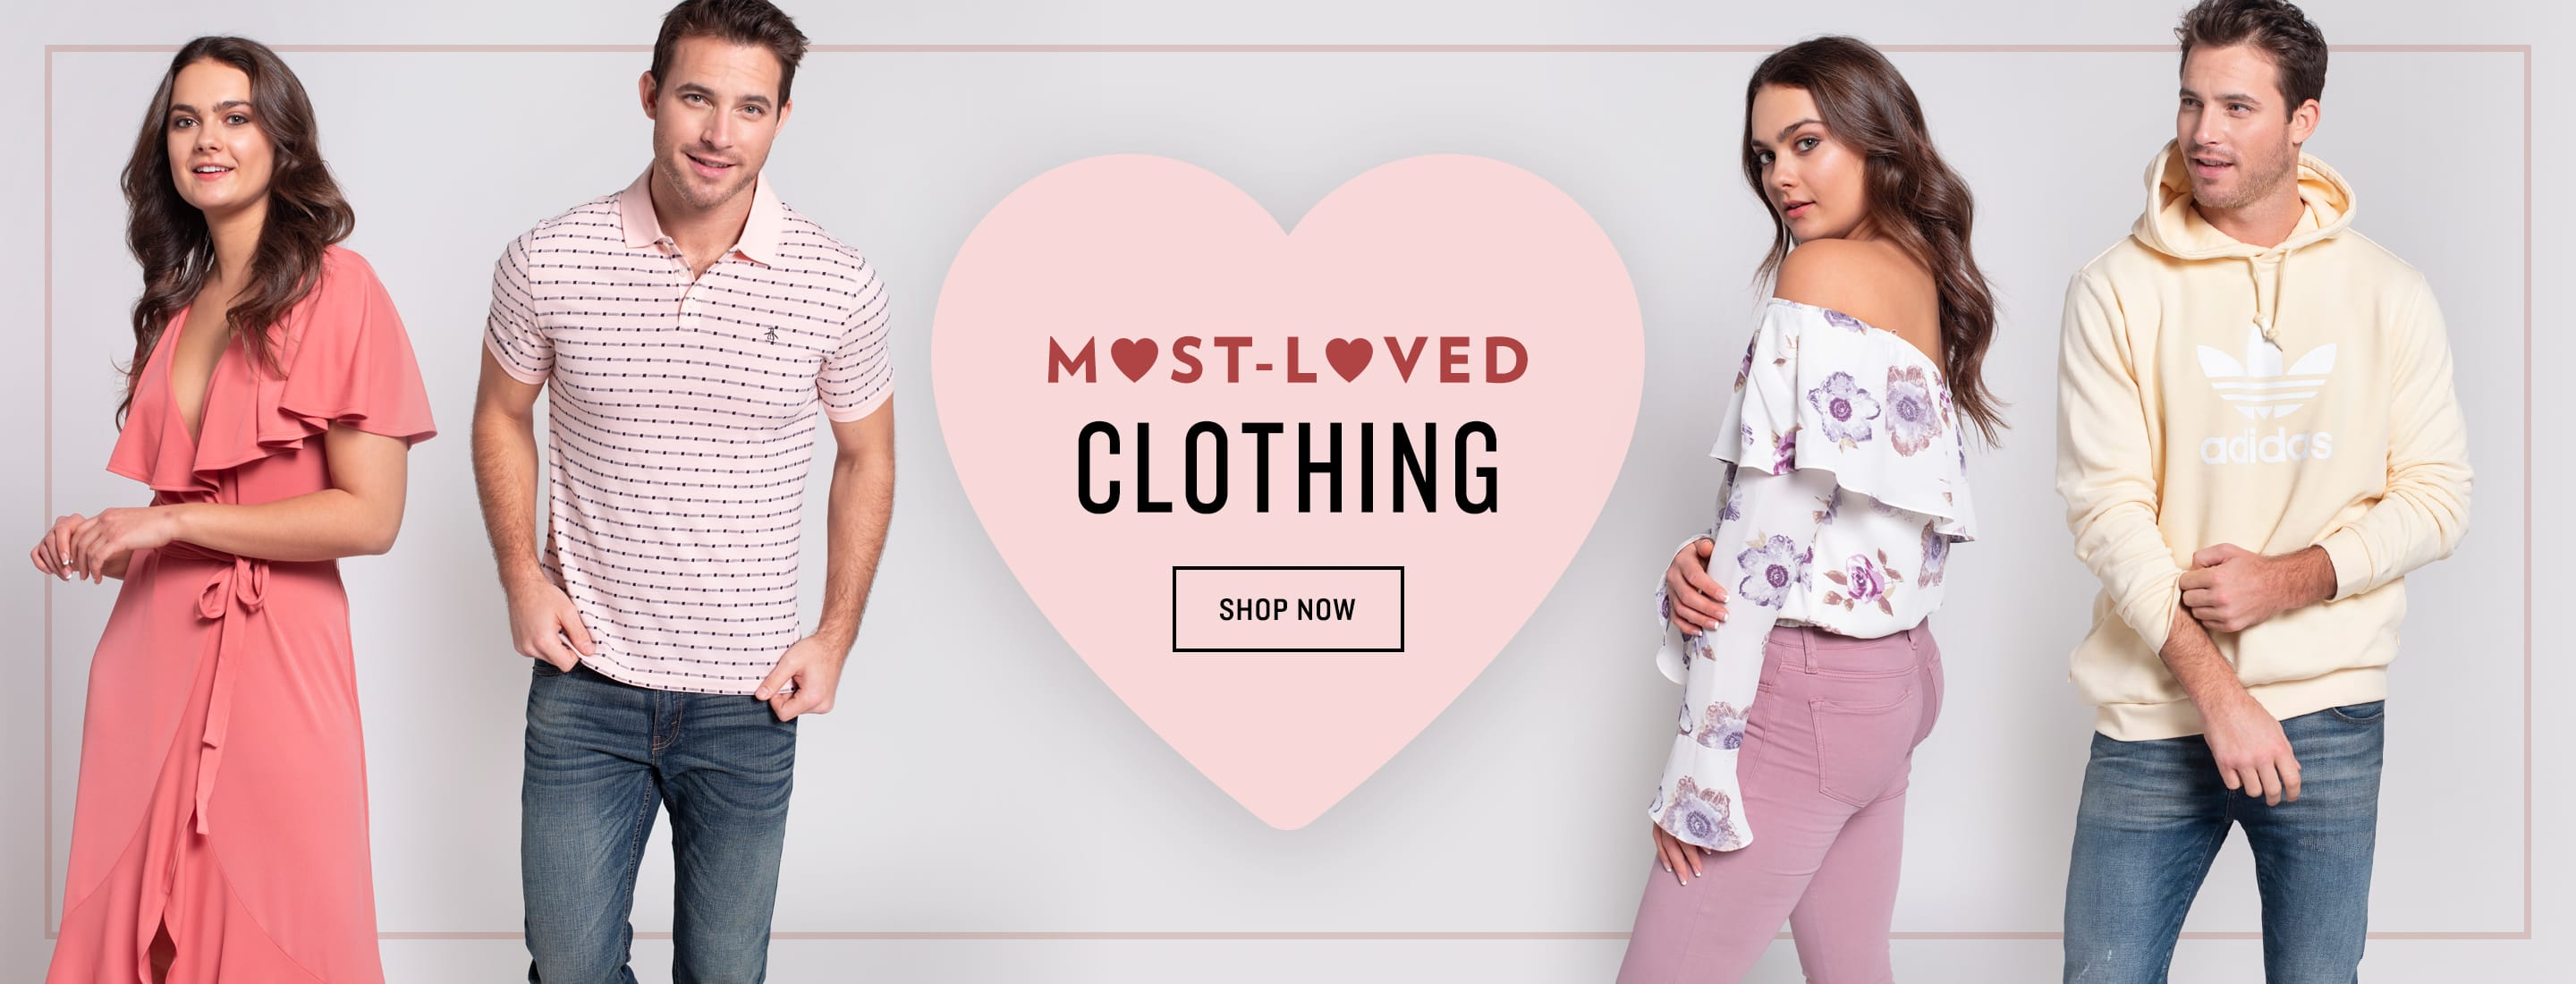 Most-Loved Clothing